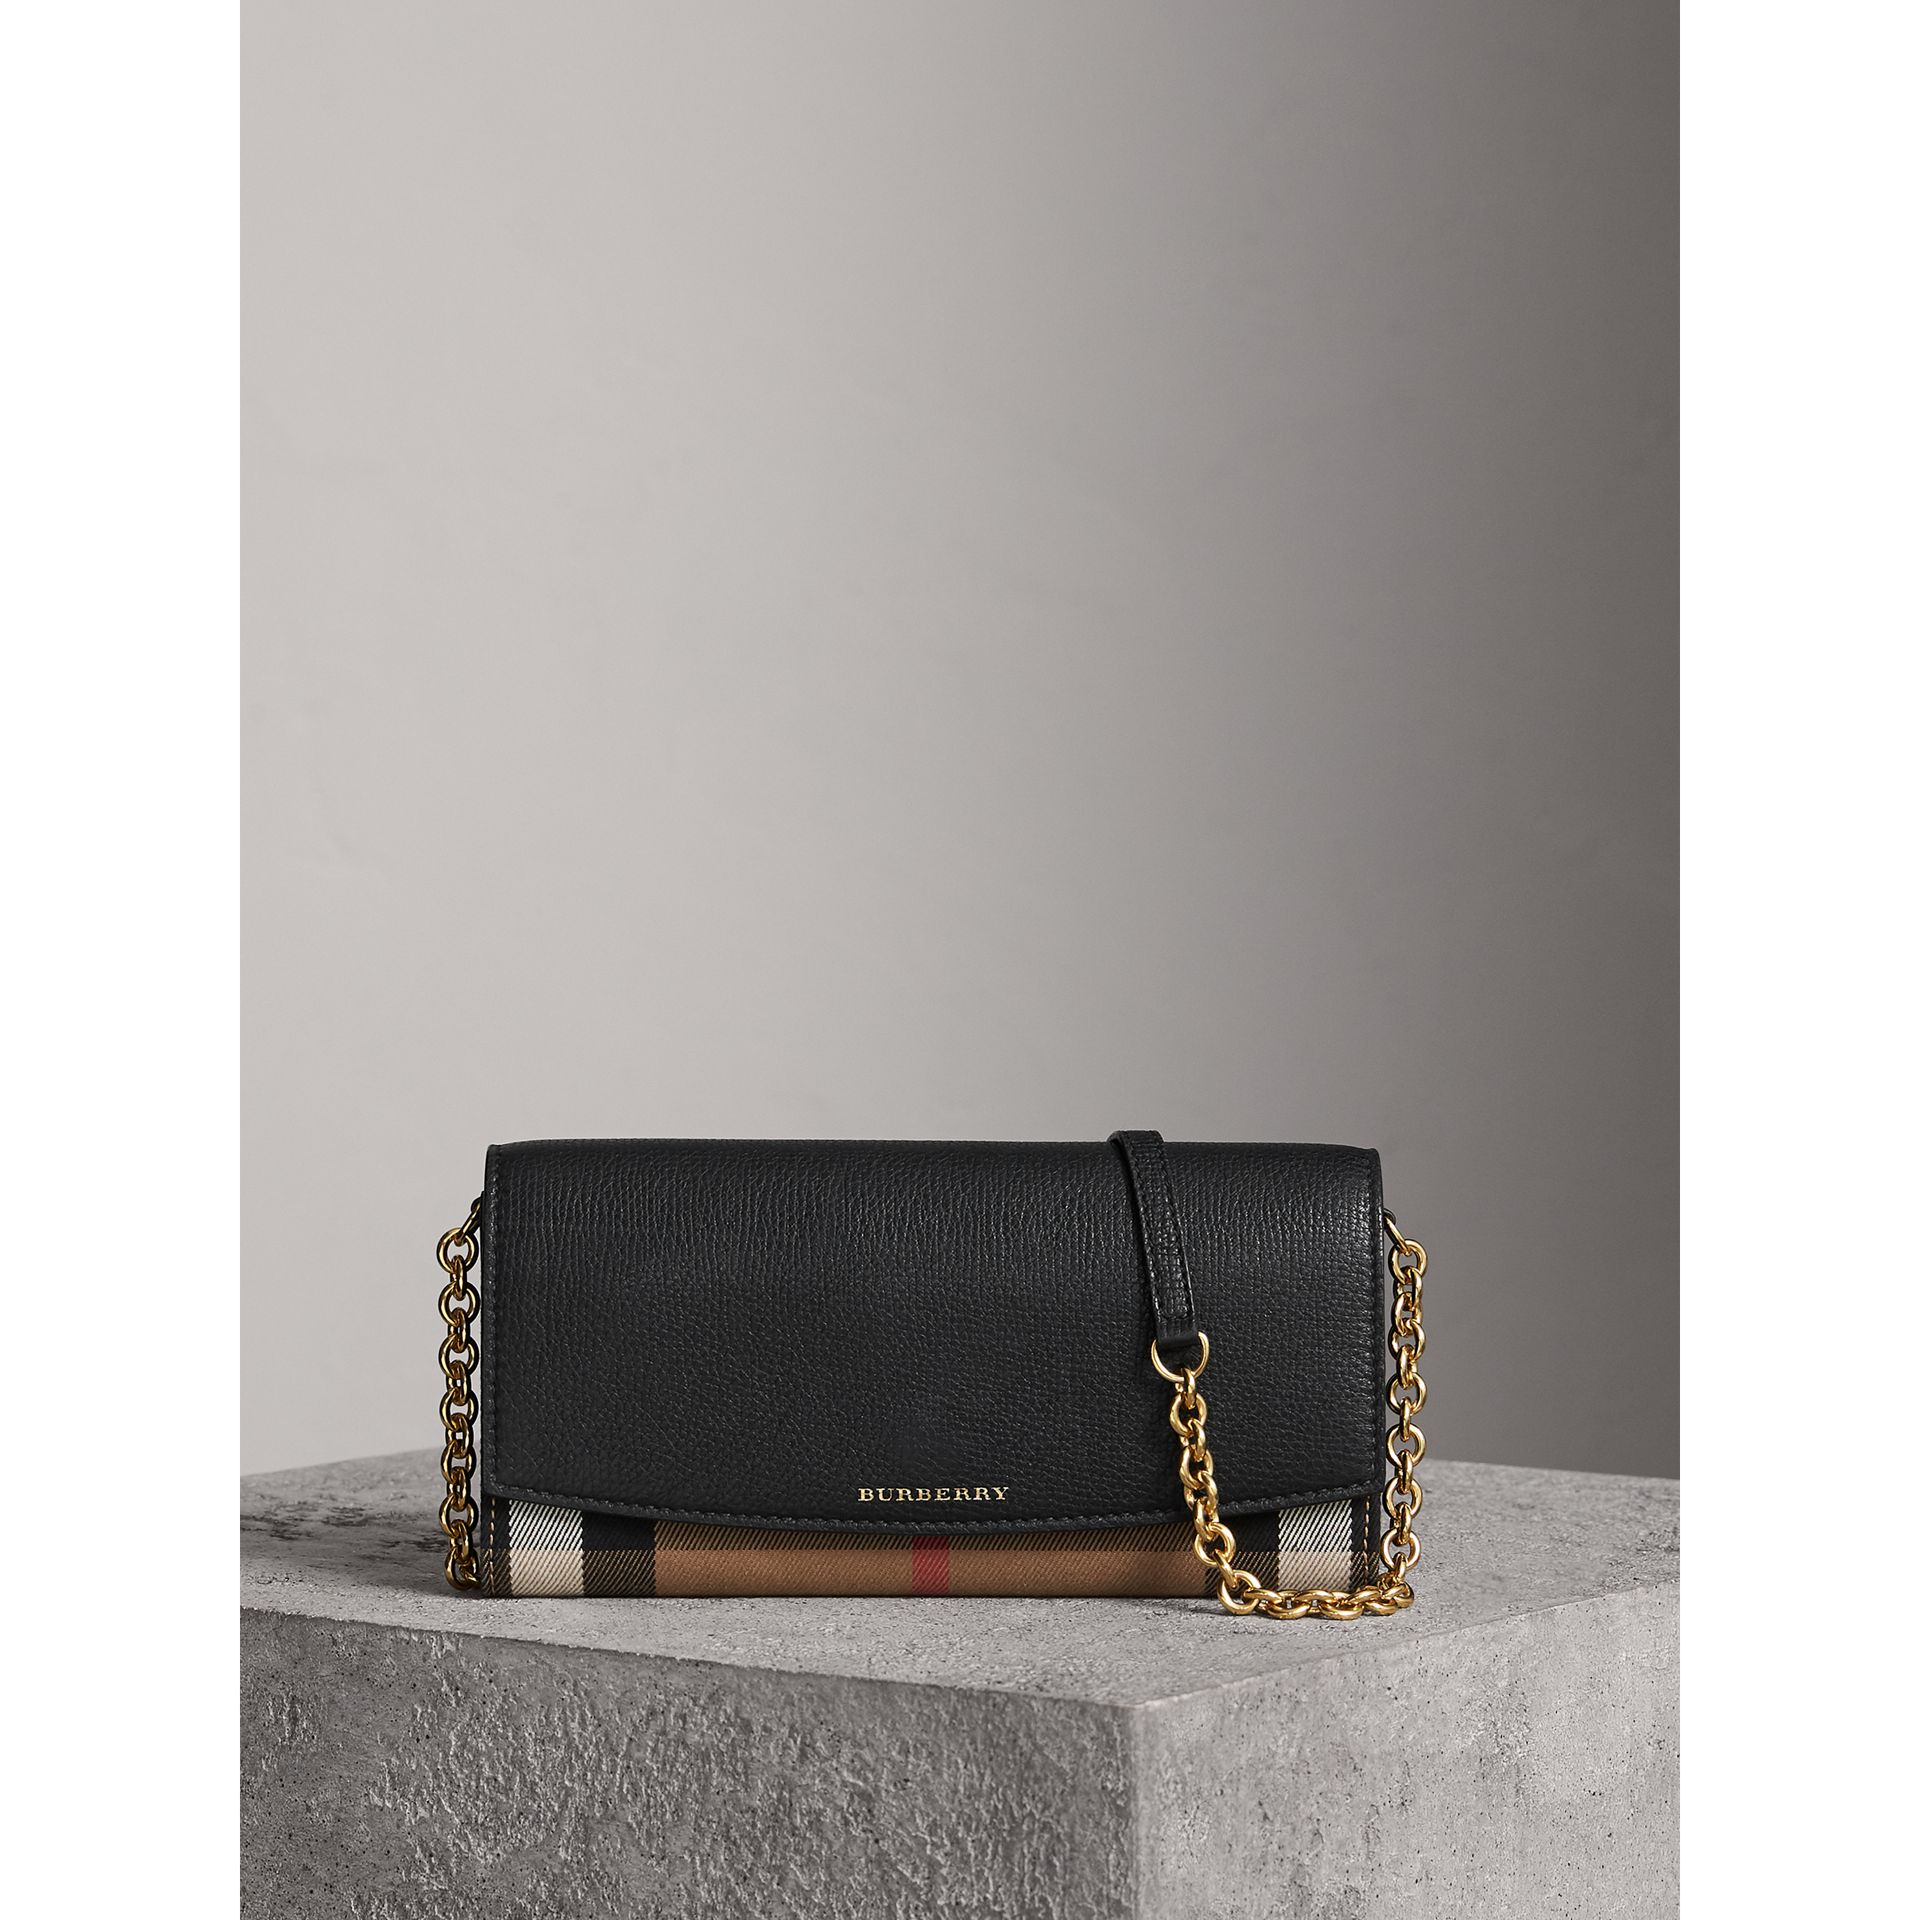 House Check and Leather Wallet with Chain in Black - Women | Burberry Australia - gallery image 7